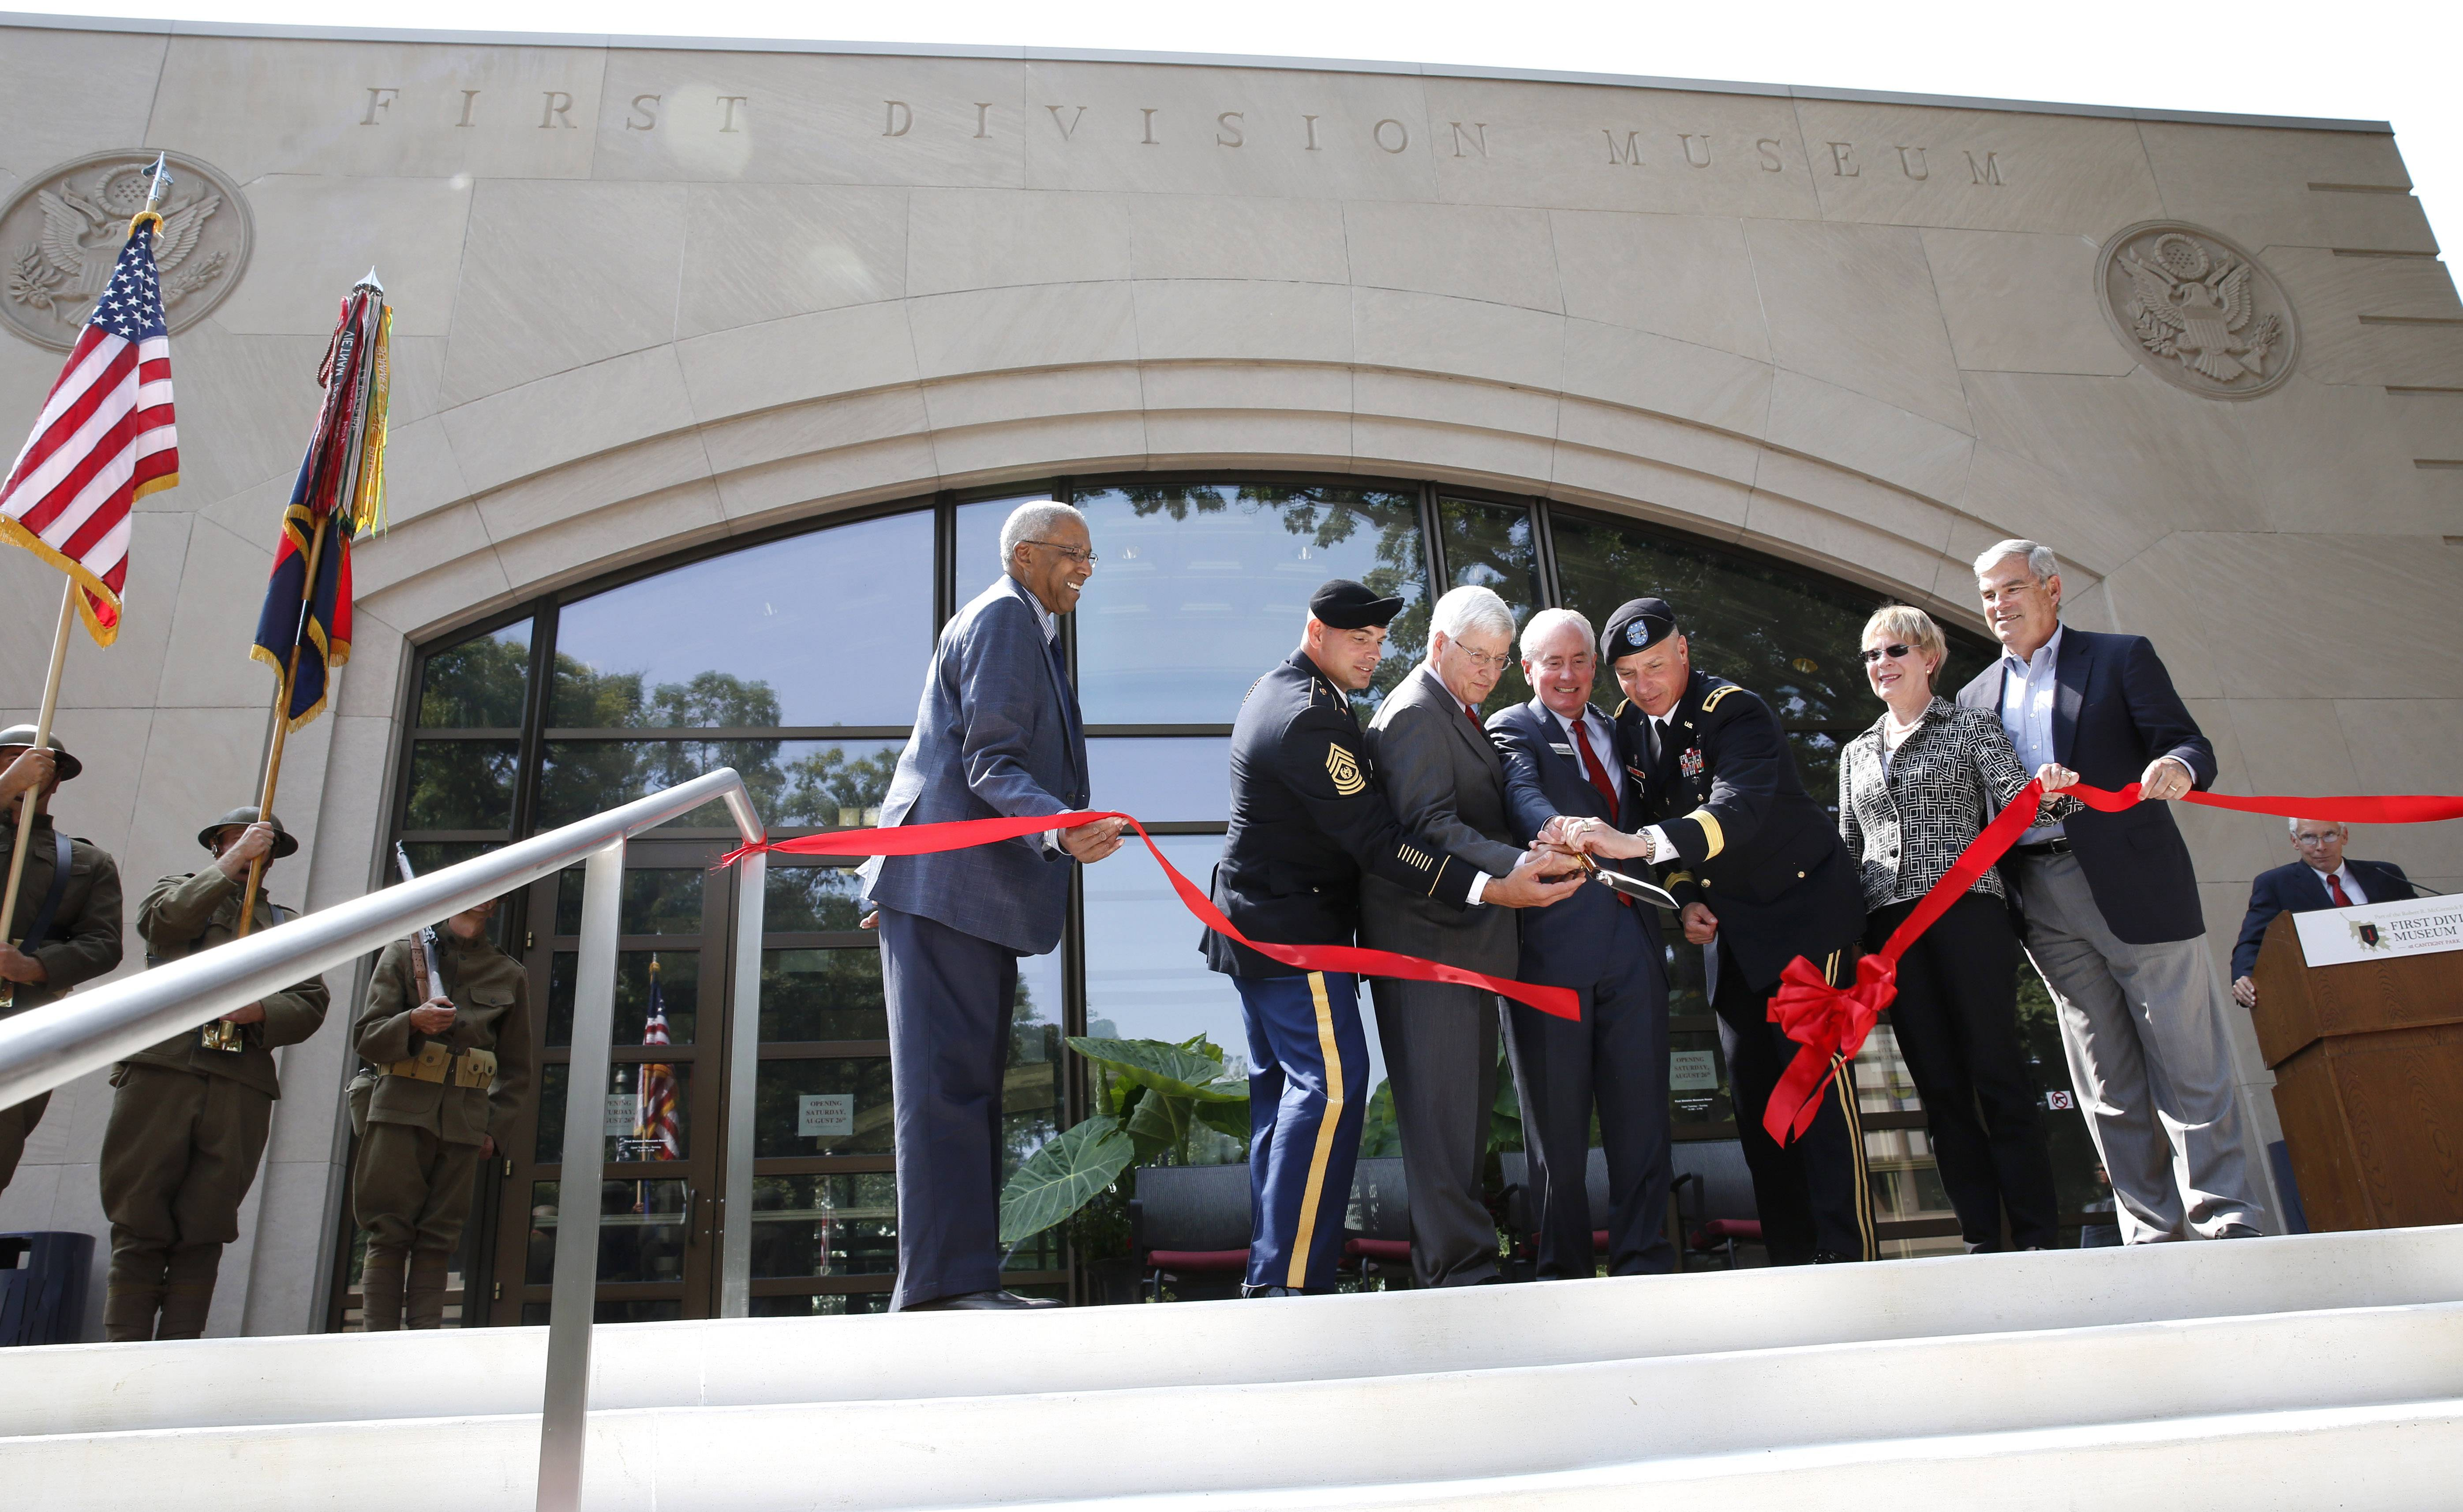 Dignitaries cut a red ribbon to officially reopen the First Division Museum on the grounds of Cantigny Park in Wheaton on Saturday. The museum had been closed since Veterans Day for an $8.5 million project to renovate exhibits and repair infrastructure. Luci Creative, a Lincolnwood design firm, was hired for the project.